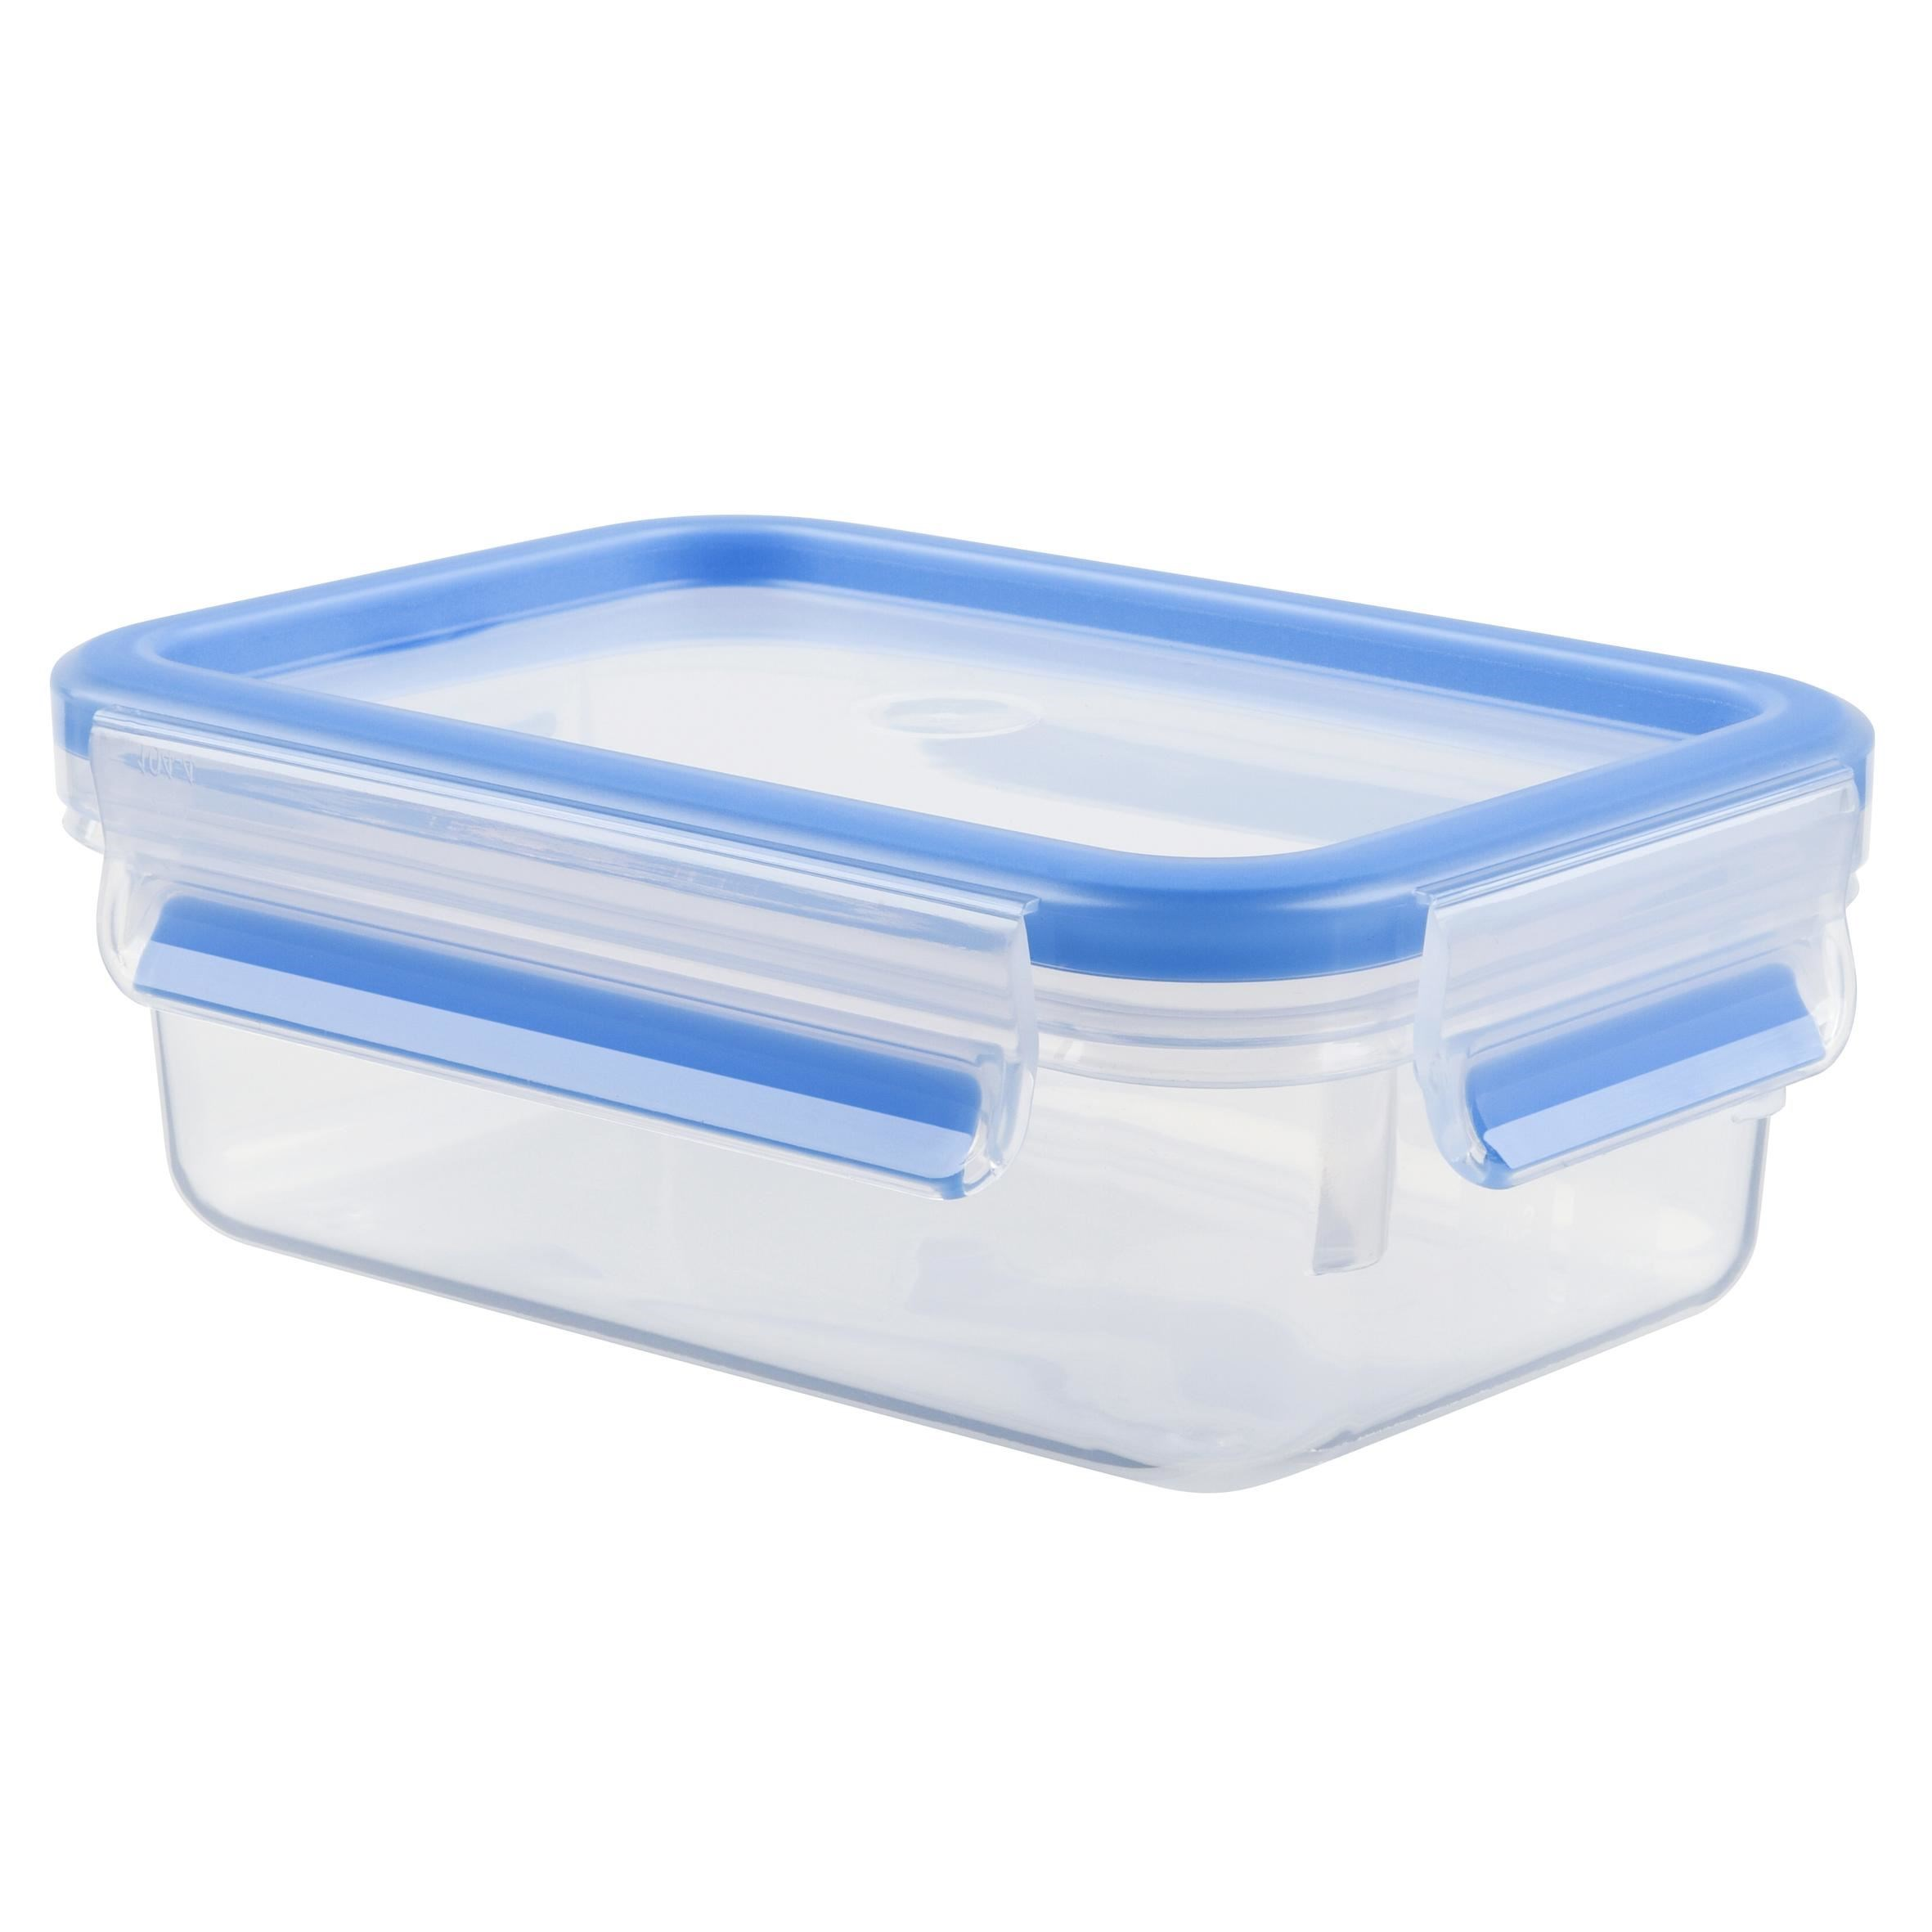 Picture of: Masterseal Fresh Box Rect 1 00l K3021212 Tefal Opbevaring